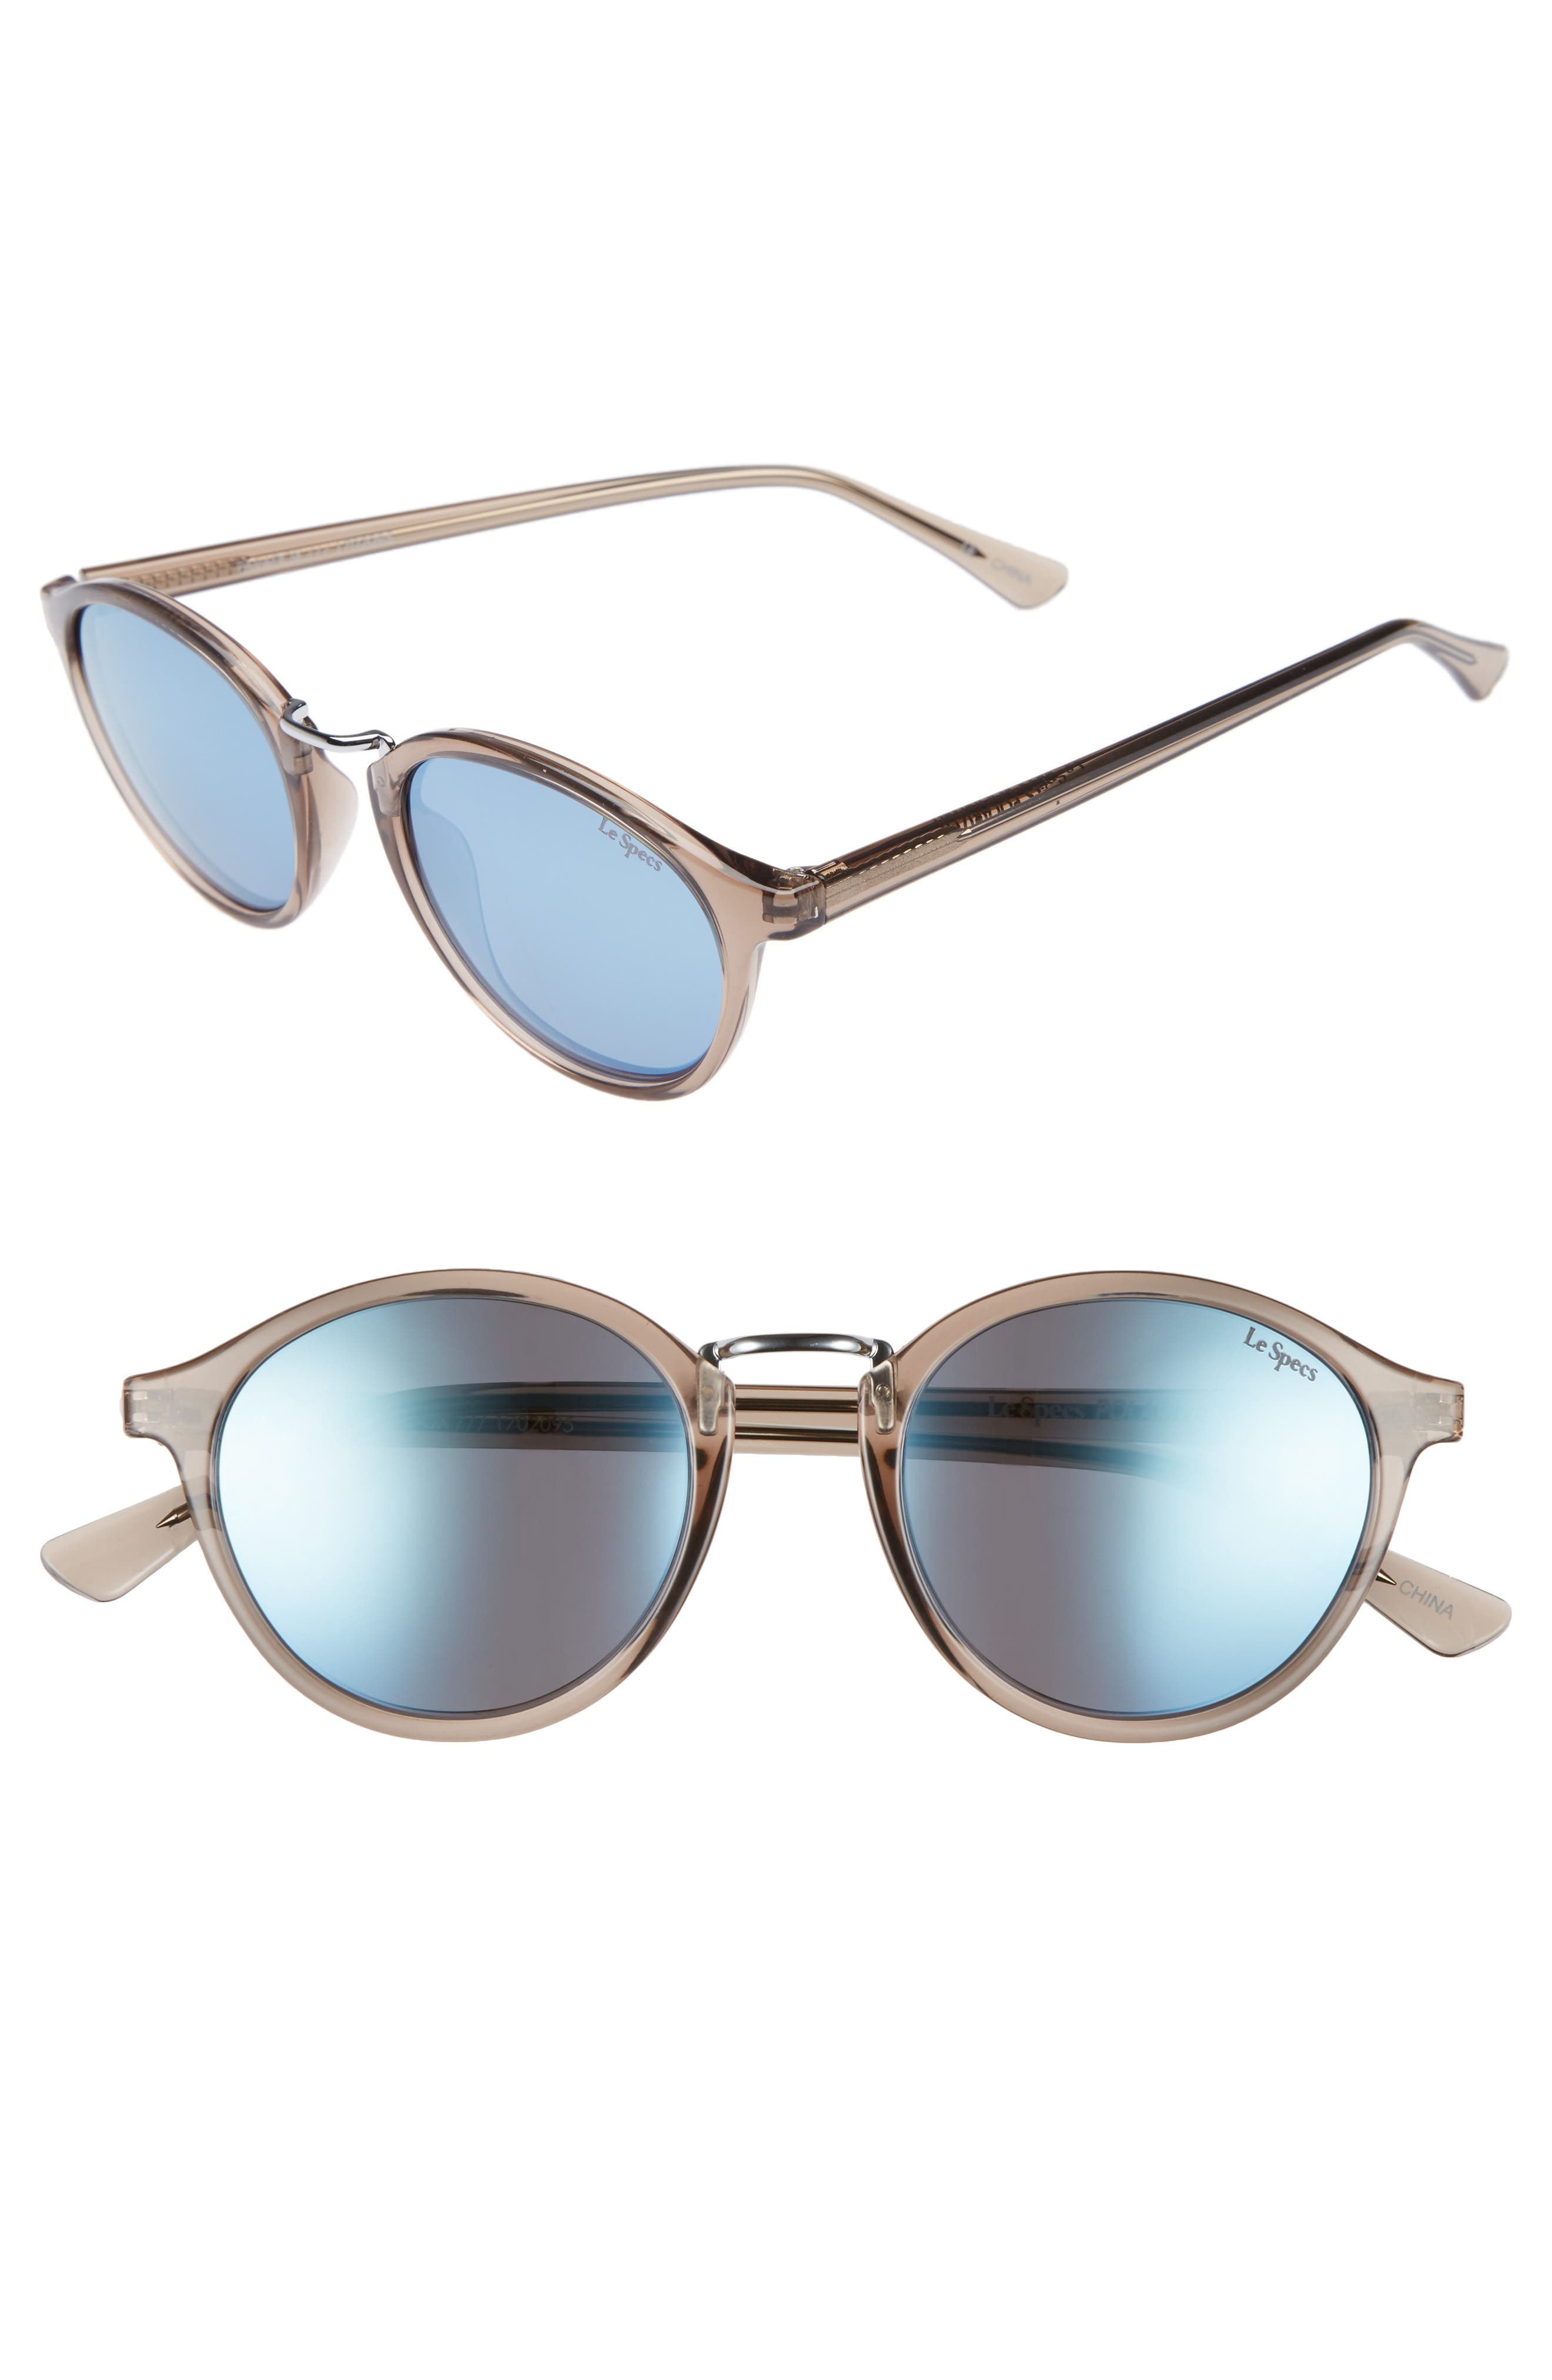 Paradox 49mm Oval Sunglasses,                         Main,                         color, Light Pebble